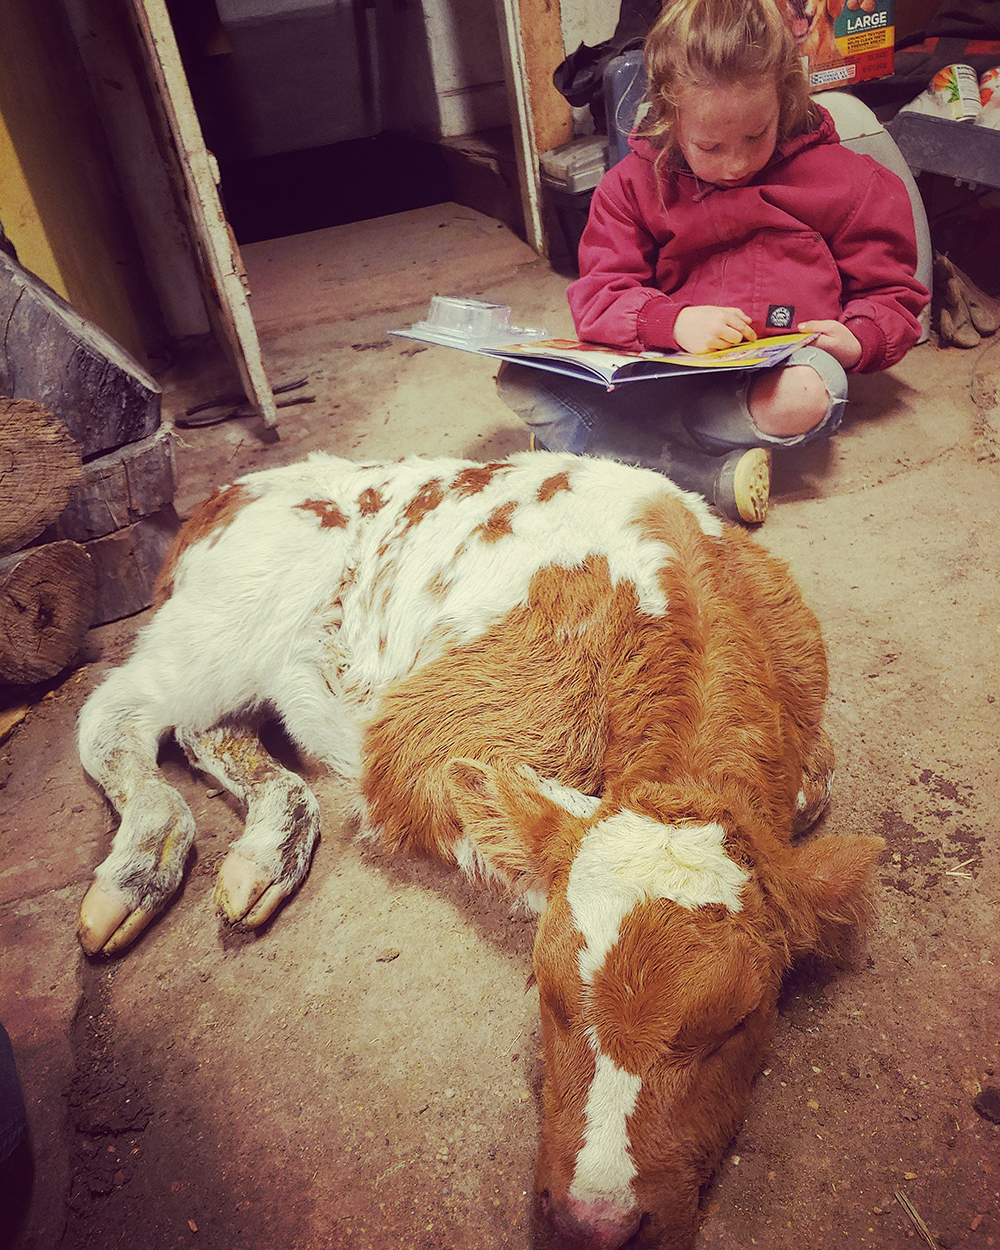 """Tif Kais showed her daughter Kimber reading to a cold calf by the wood stove. Nothing hasnt changed much for us with this COVID19, she said. """"Just another day on the ranch."""""""